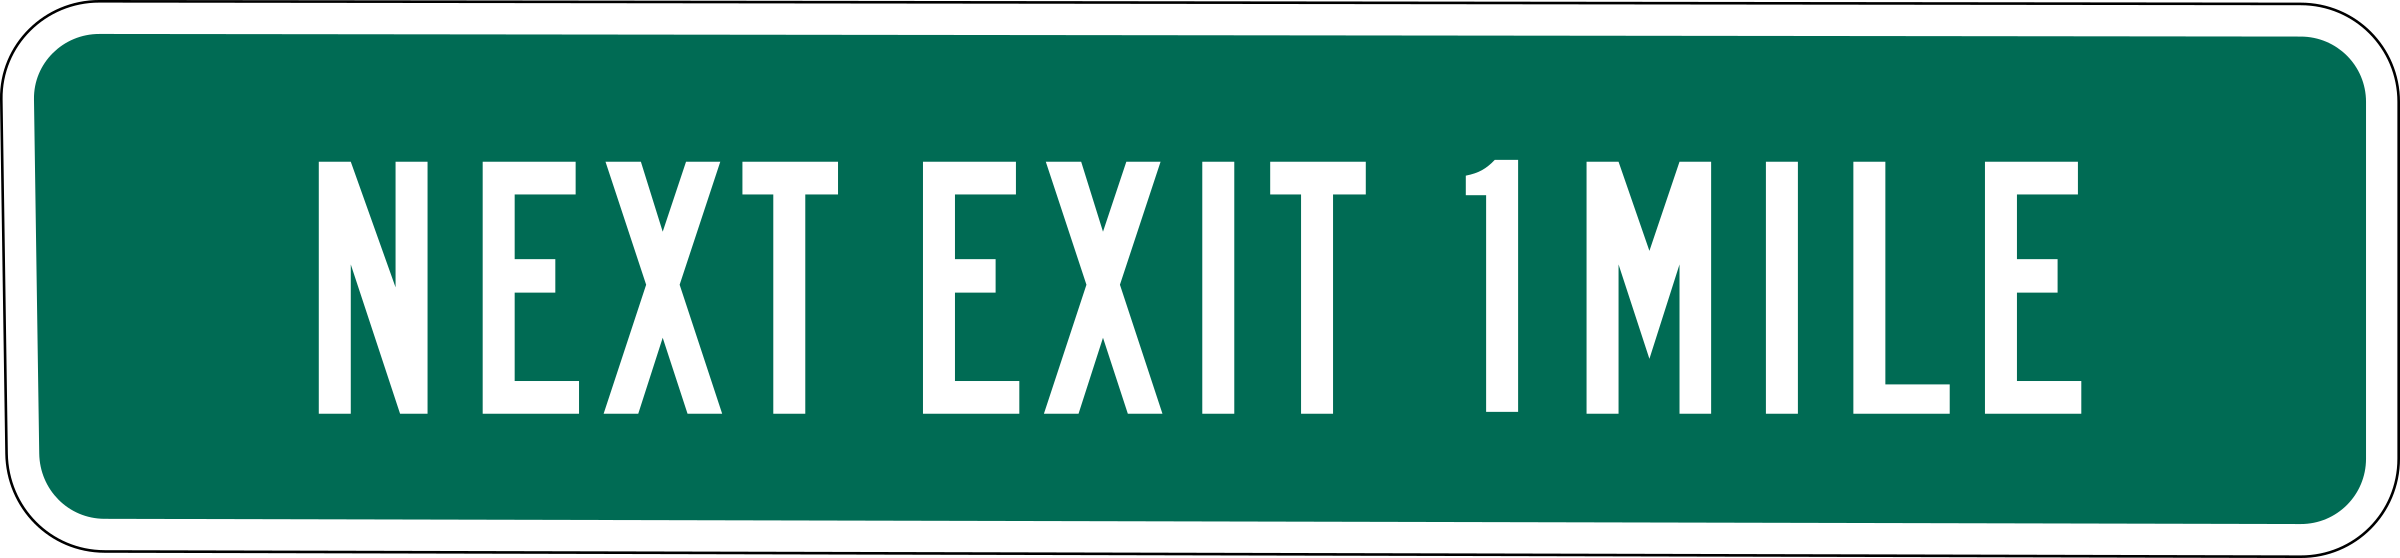 Next Exit 1 mile by Rfc1394